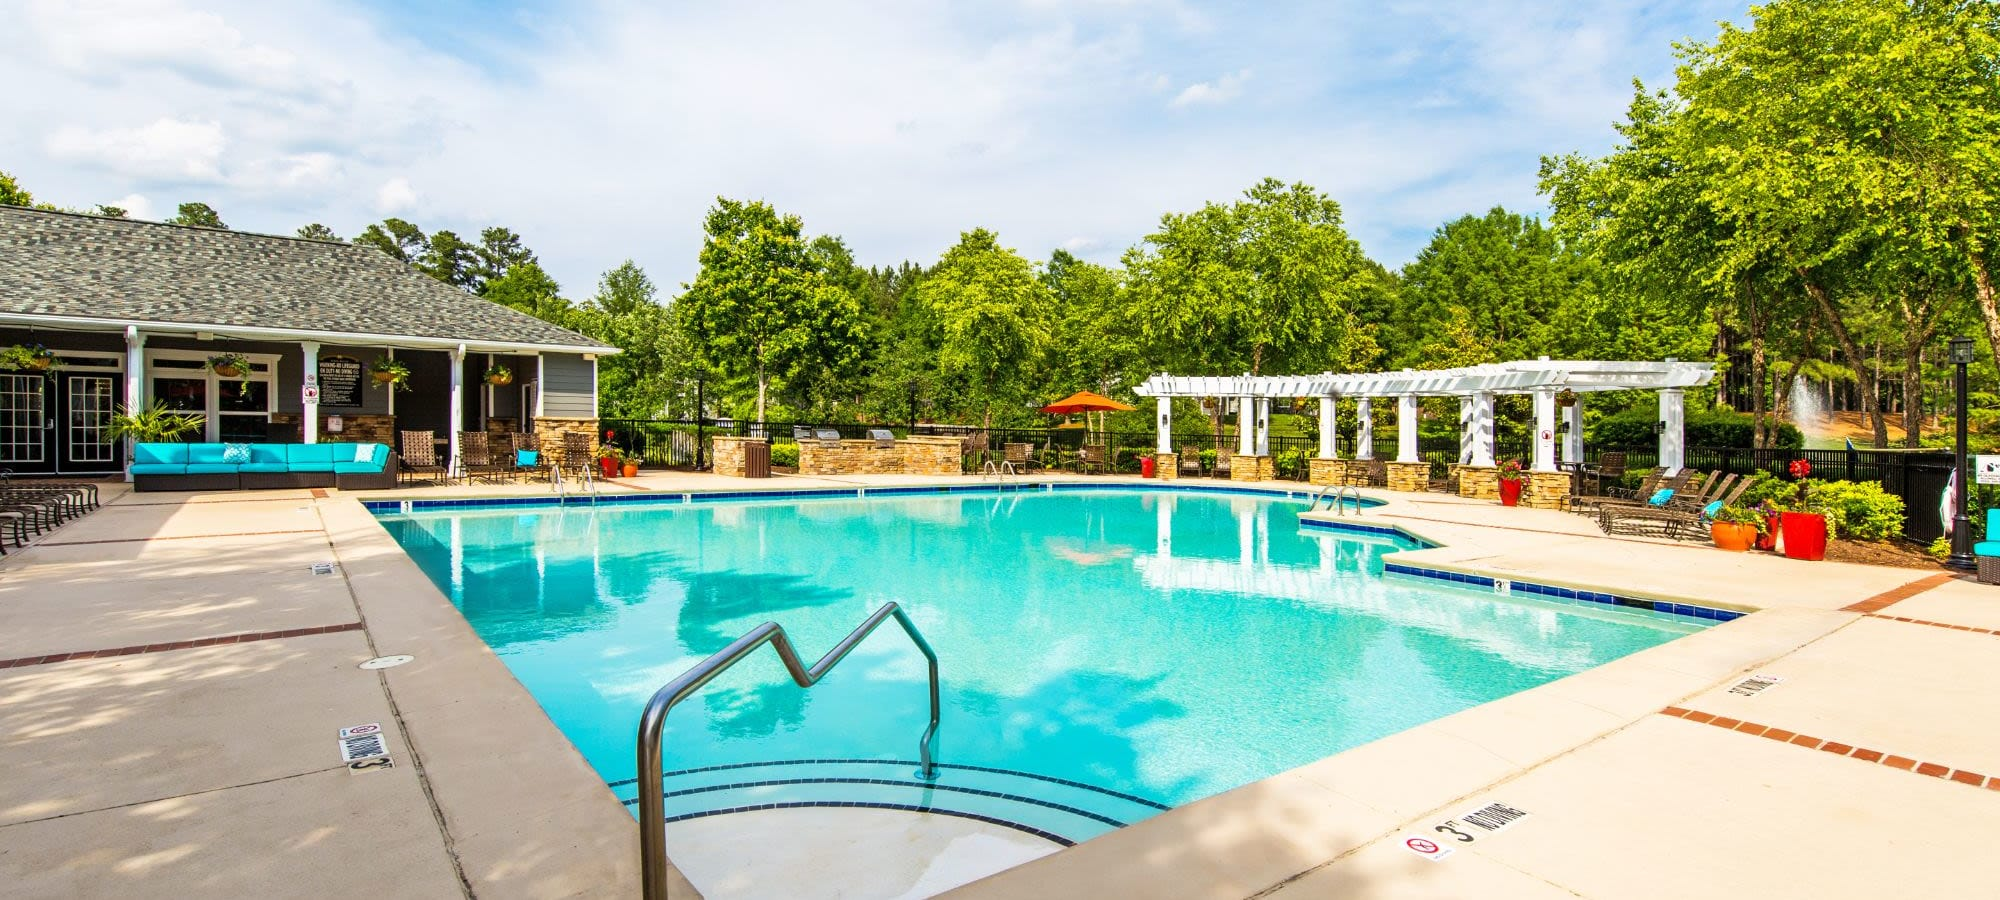 Schedule a tour of Marquis on Cary Parkway in Morrisville, North Carolina